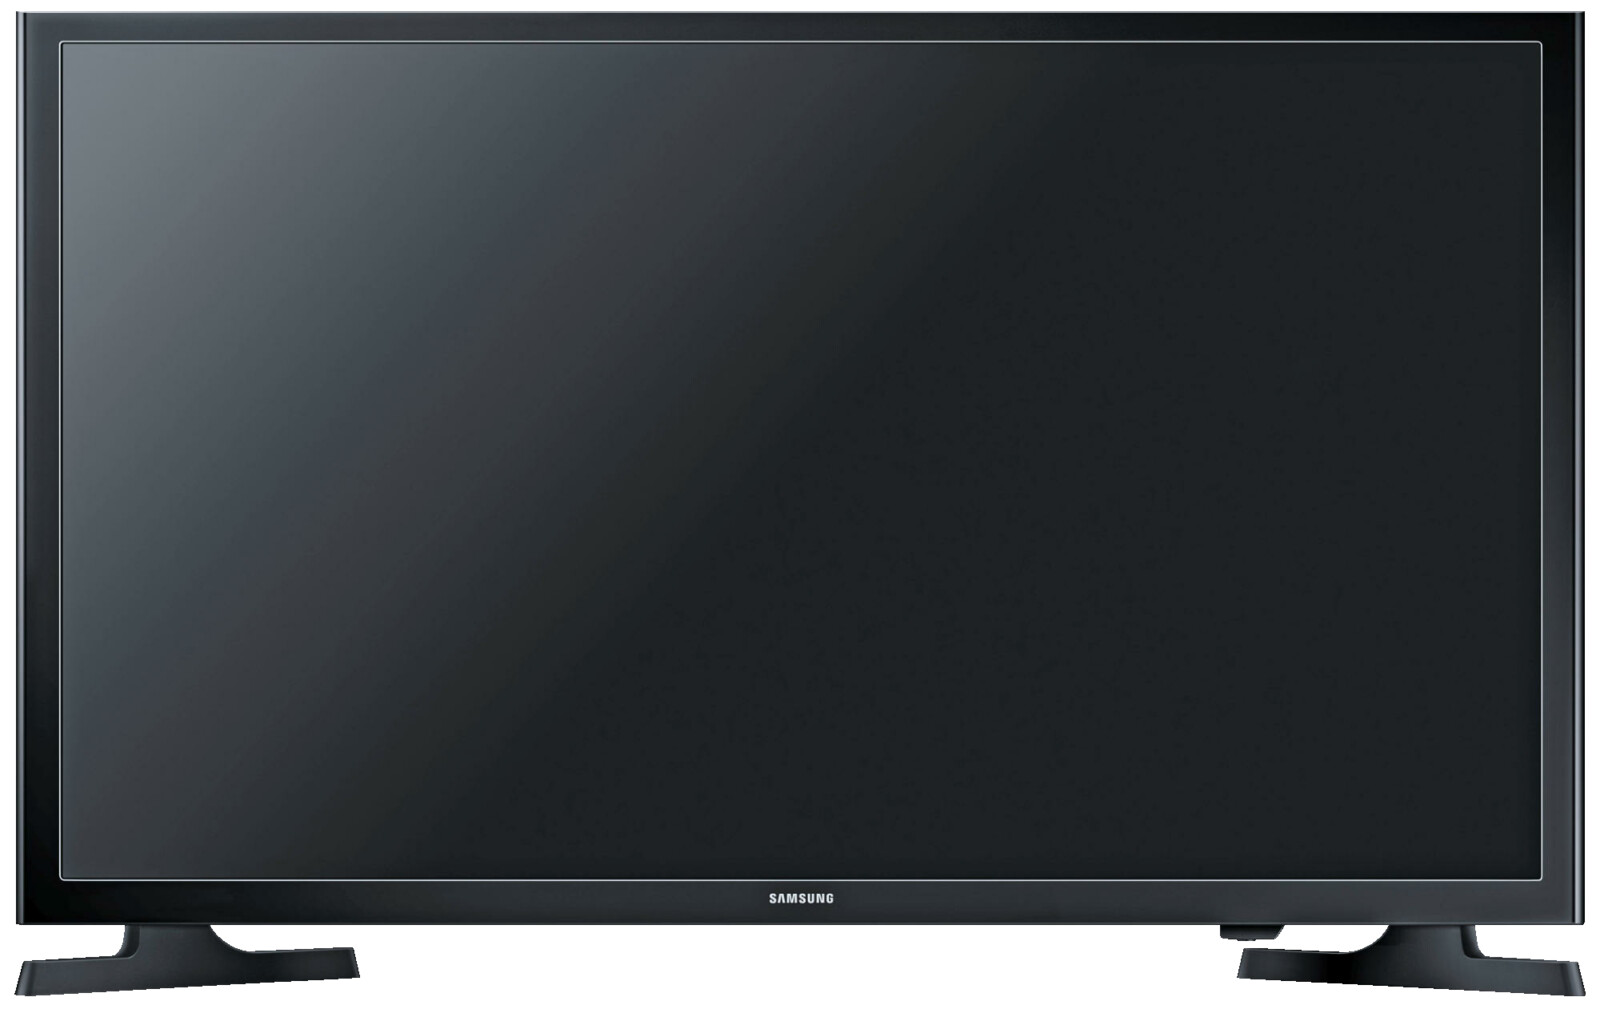 samsung ue32j4000aw 80 cm 32 zoll hd ready led tv. Black Bedroom Furniture Sets. Home Design Ideas